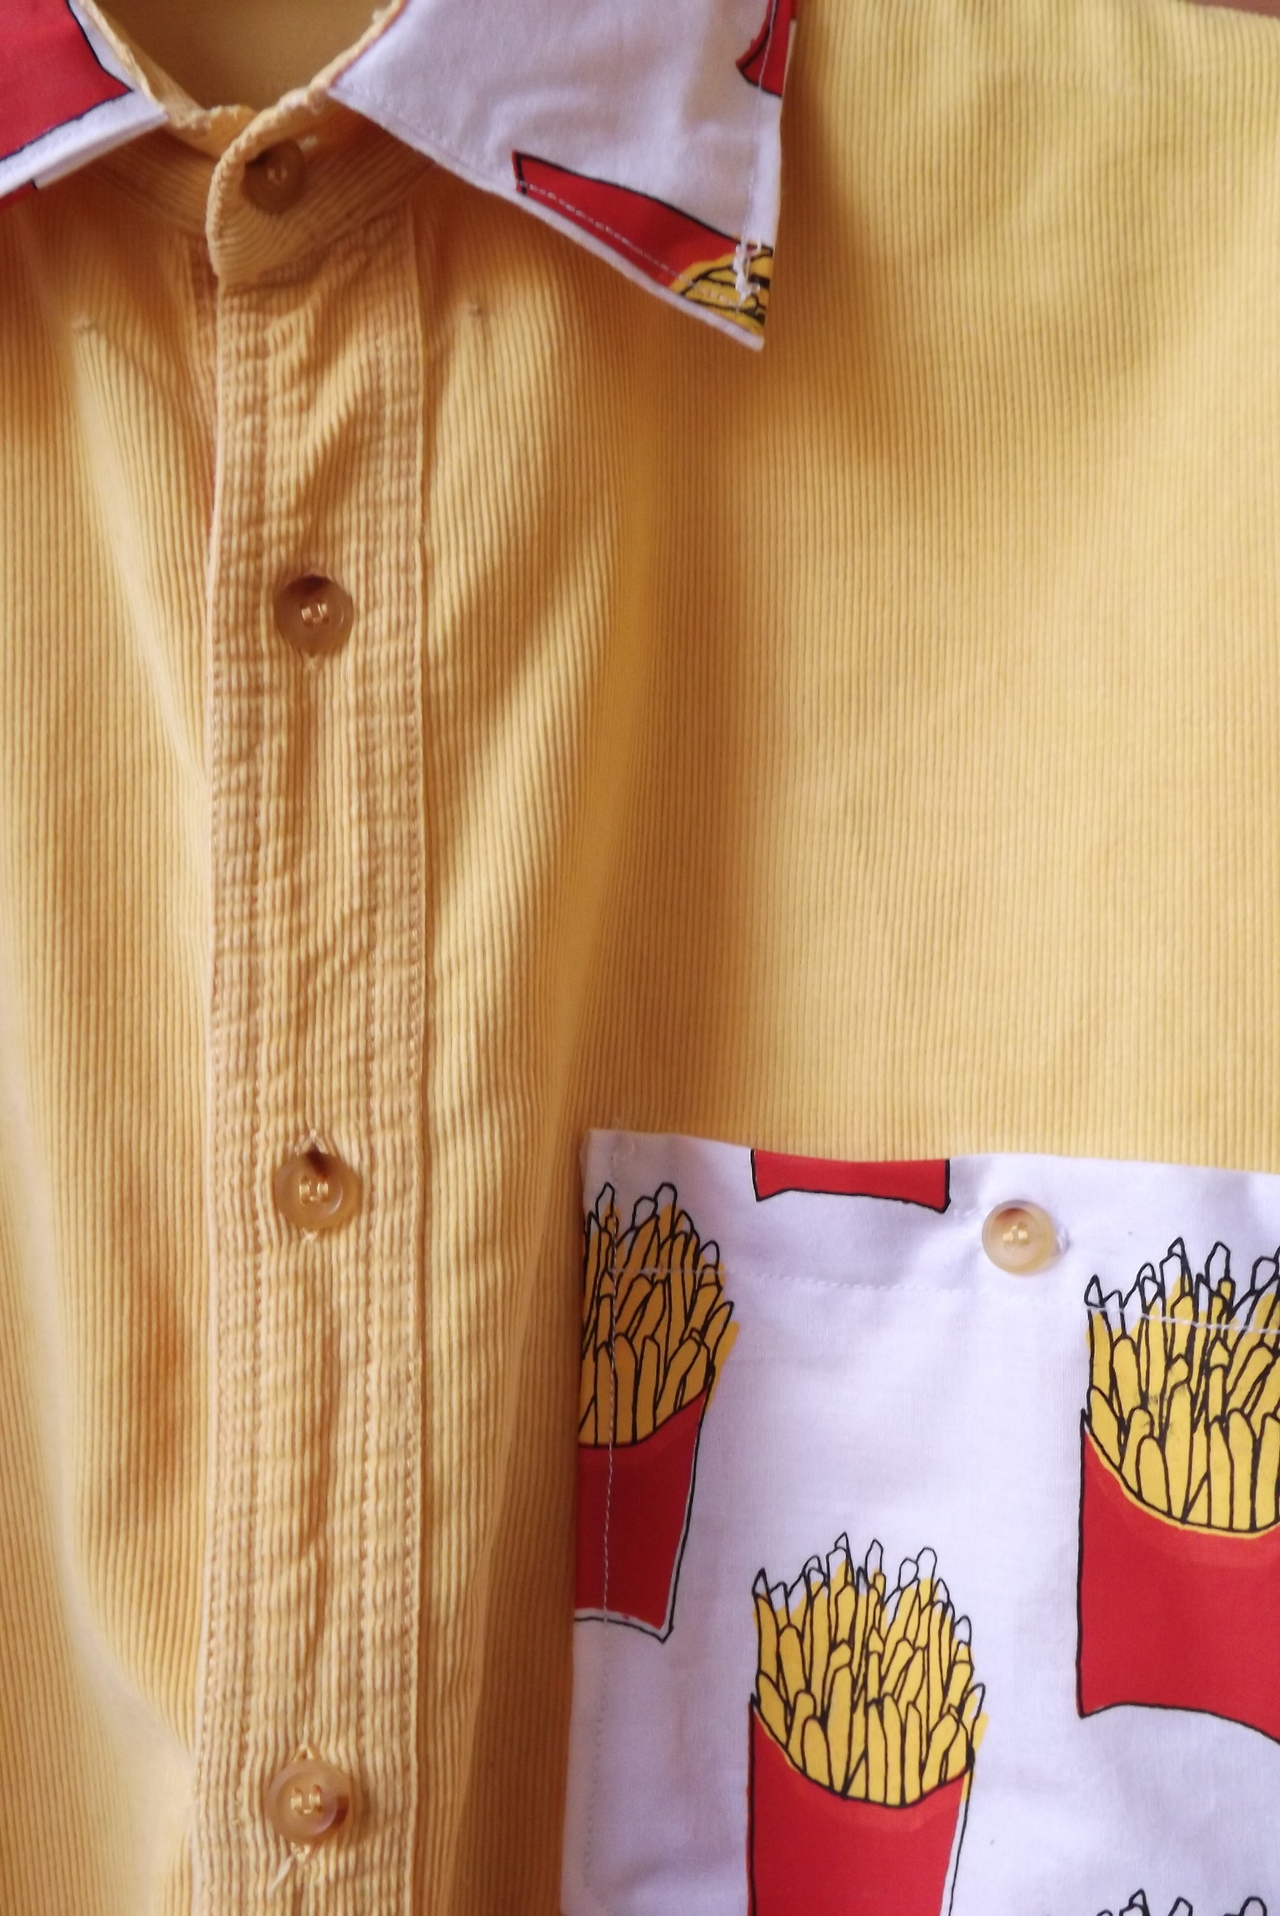 hungryzipper :     CORDUROY FRIES SHIRT     this is actually pretty cute